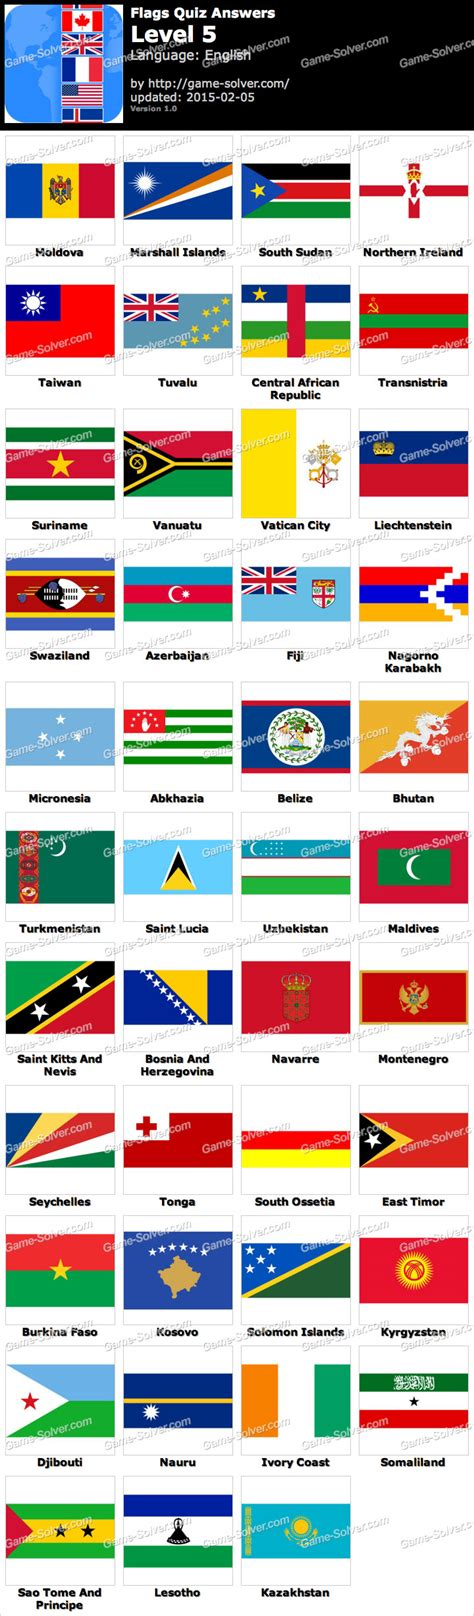 flags of the world game answers flags quiz level 5 game solver